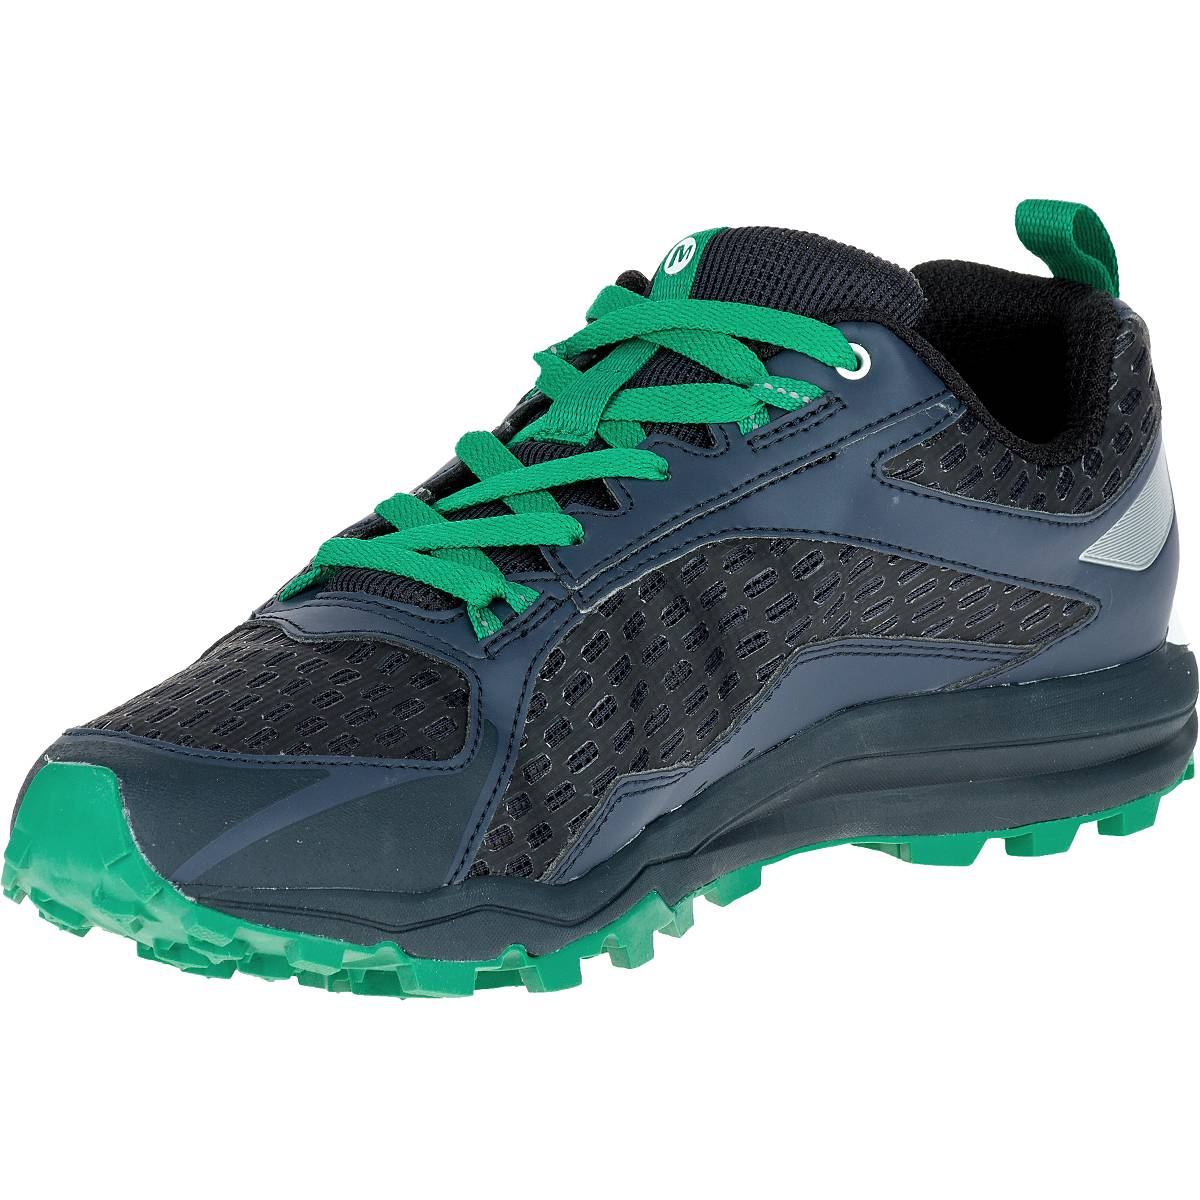 Merrell All Out Crush Hiking Shoes